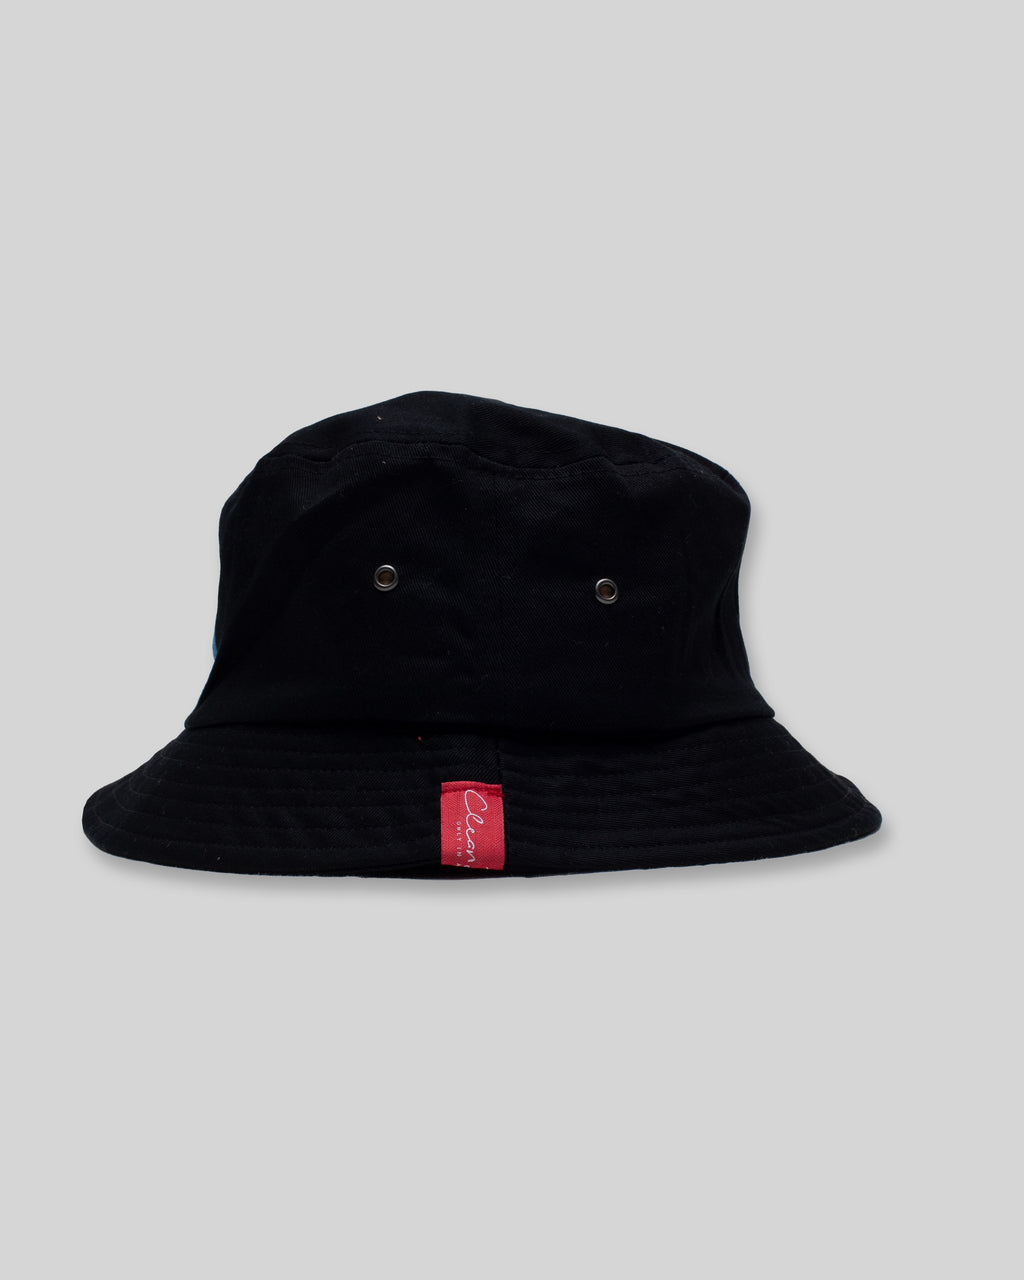 3.4 Metal Eyelet Bucket Hat 5